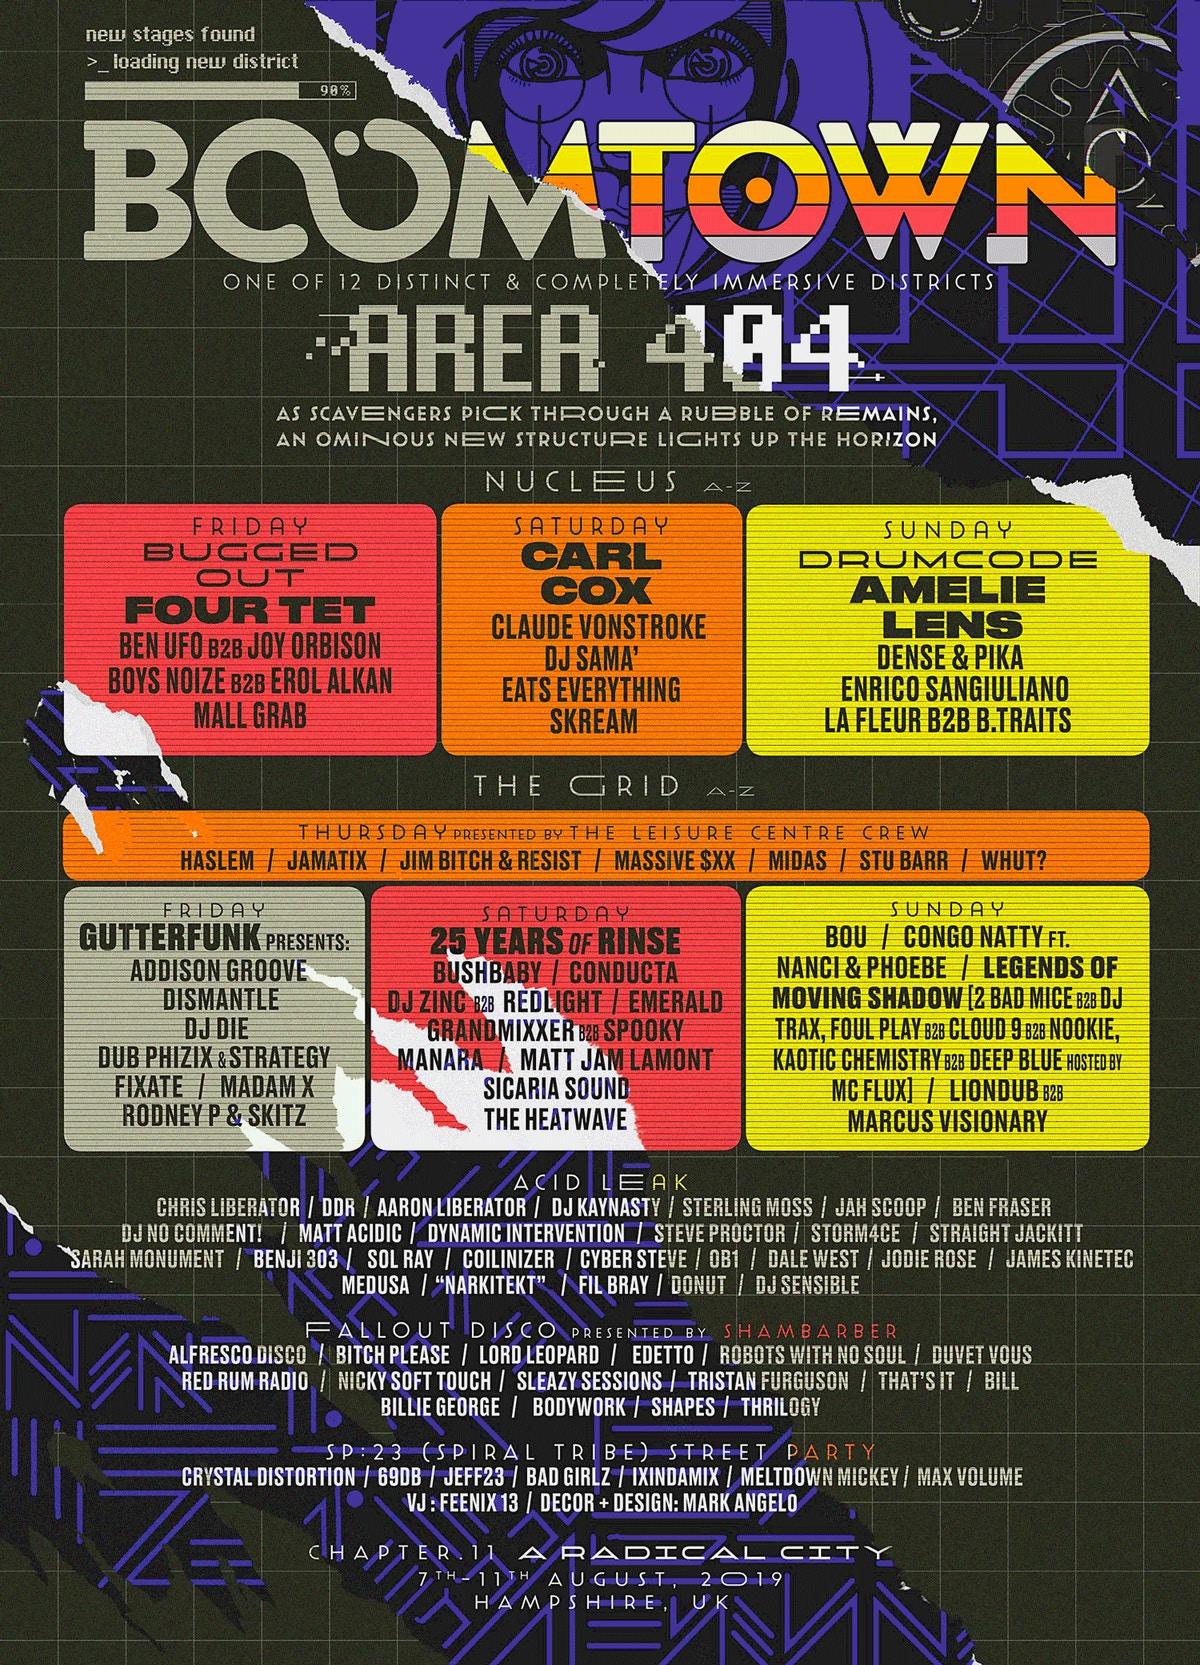 DISTRICT ANNOUNCEMENT: AREA 404 | Boomtown Chapter 11 - A Radical